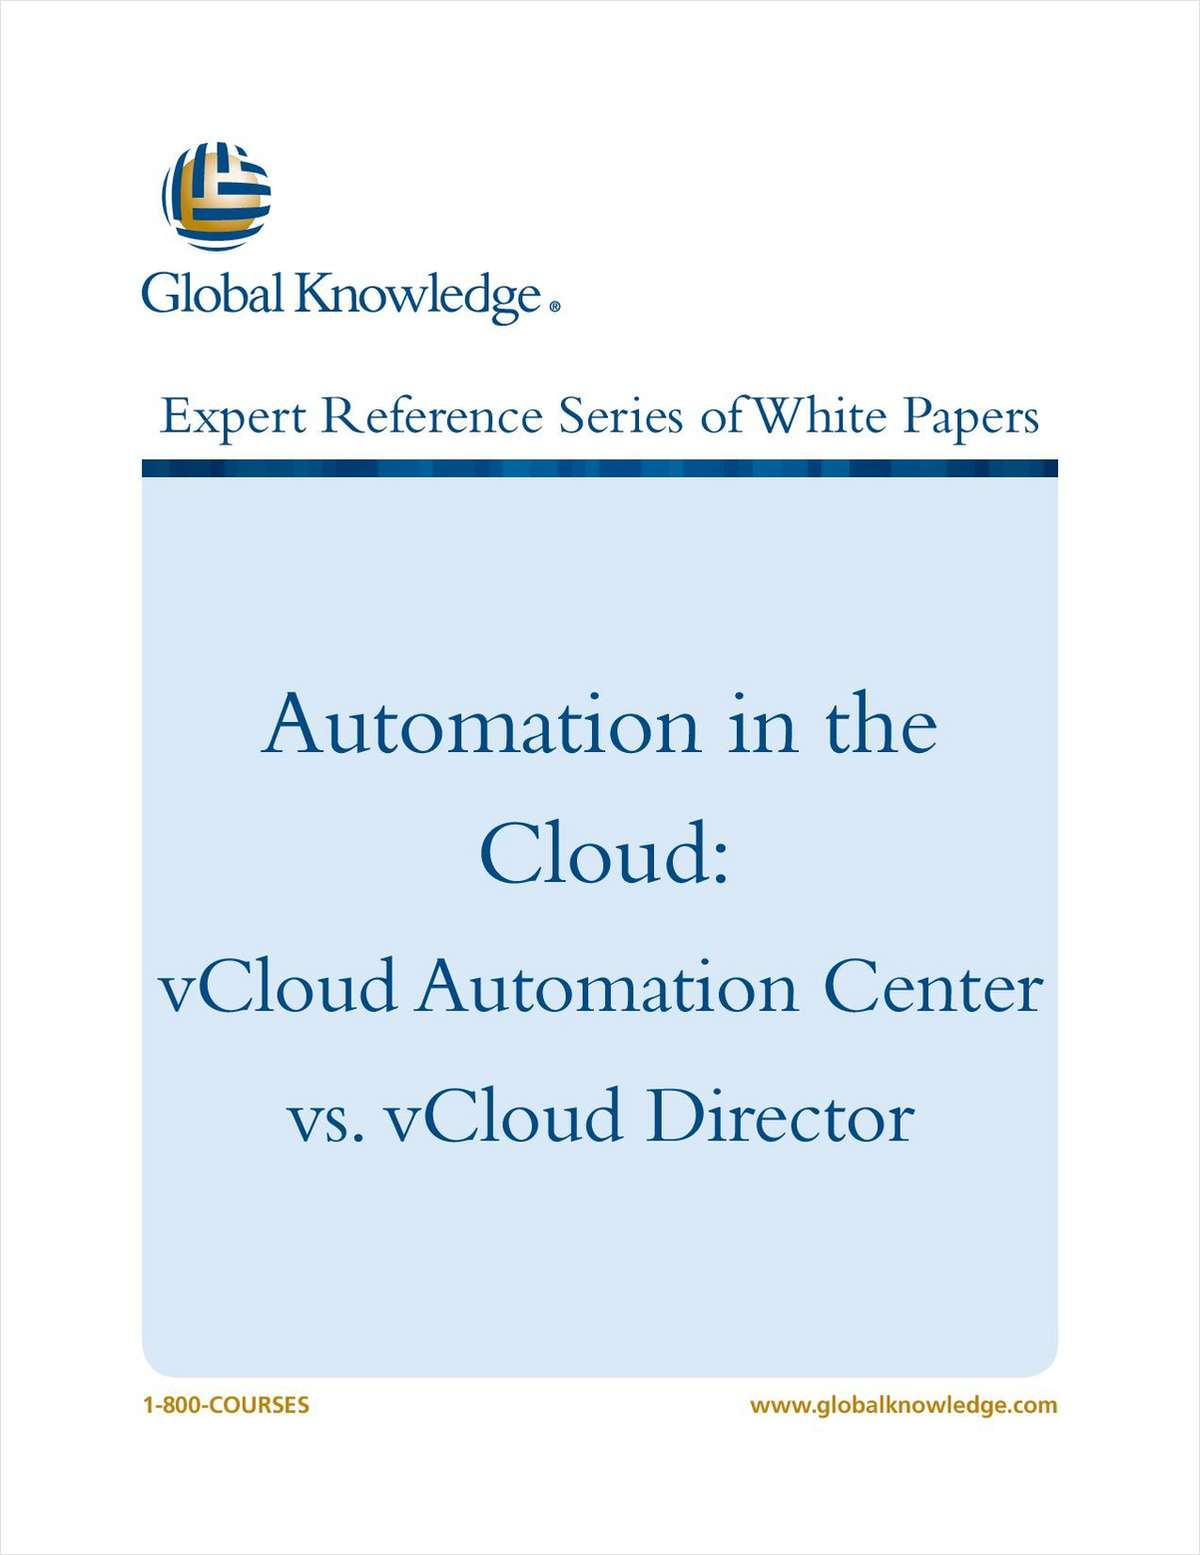 Automation in the Cloud: vCloud Automation Center vs. vCloud Director